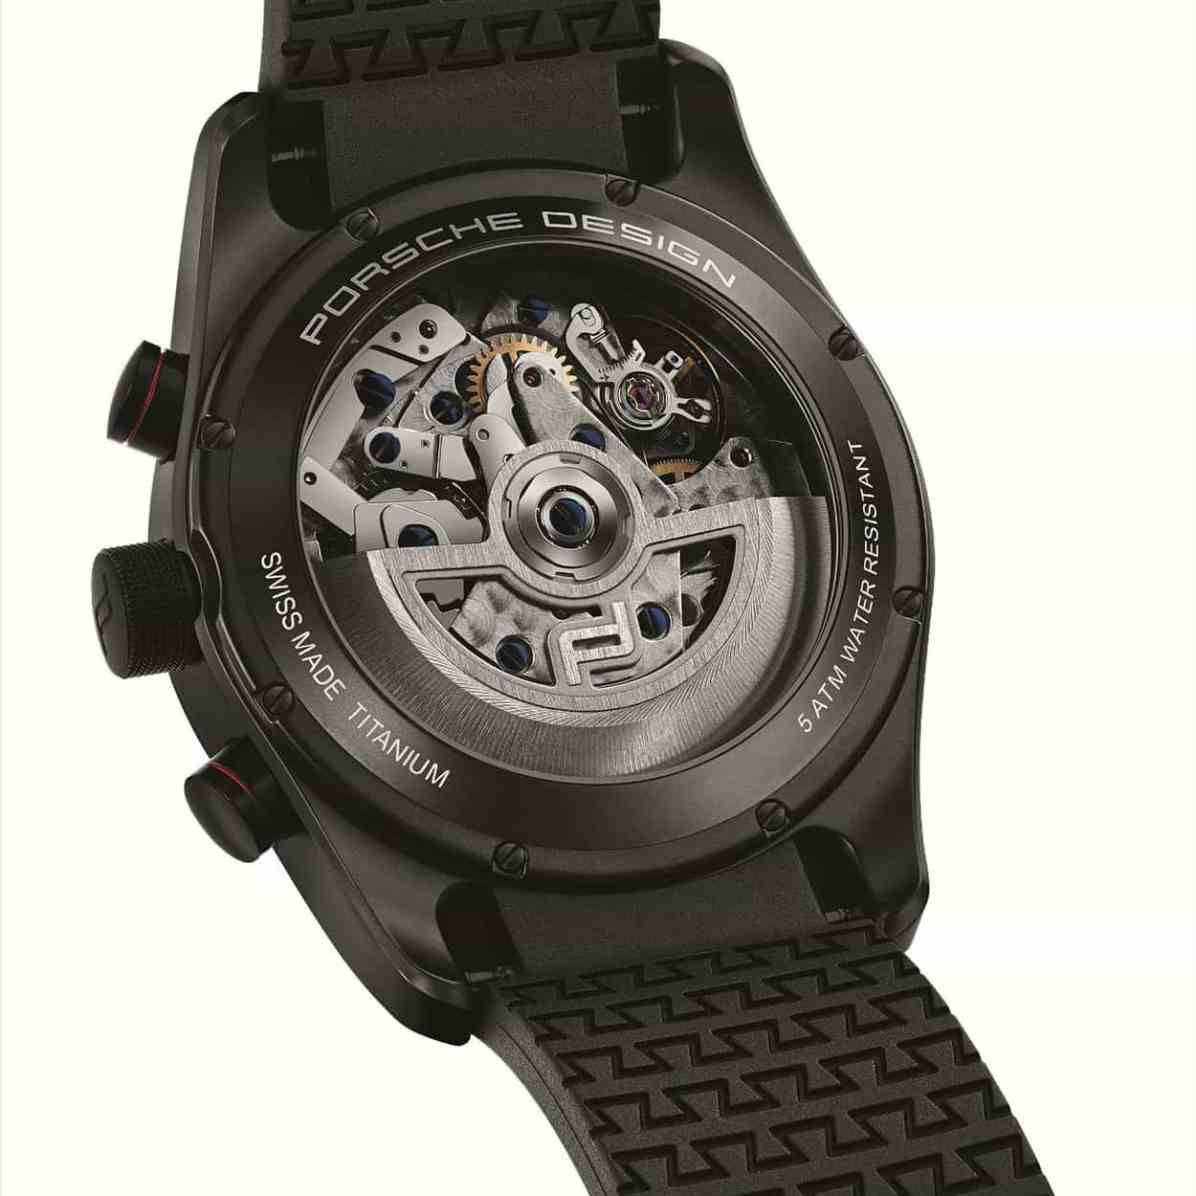 4046901408732_Chronotimer_Series-1-Sportive-Carbon_Back